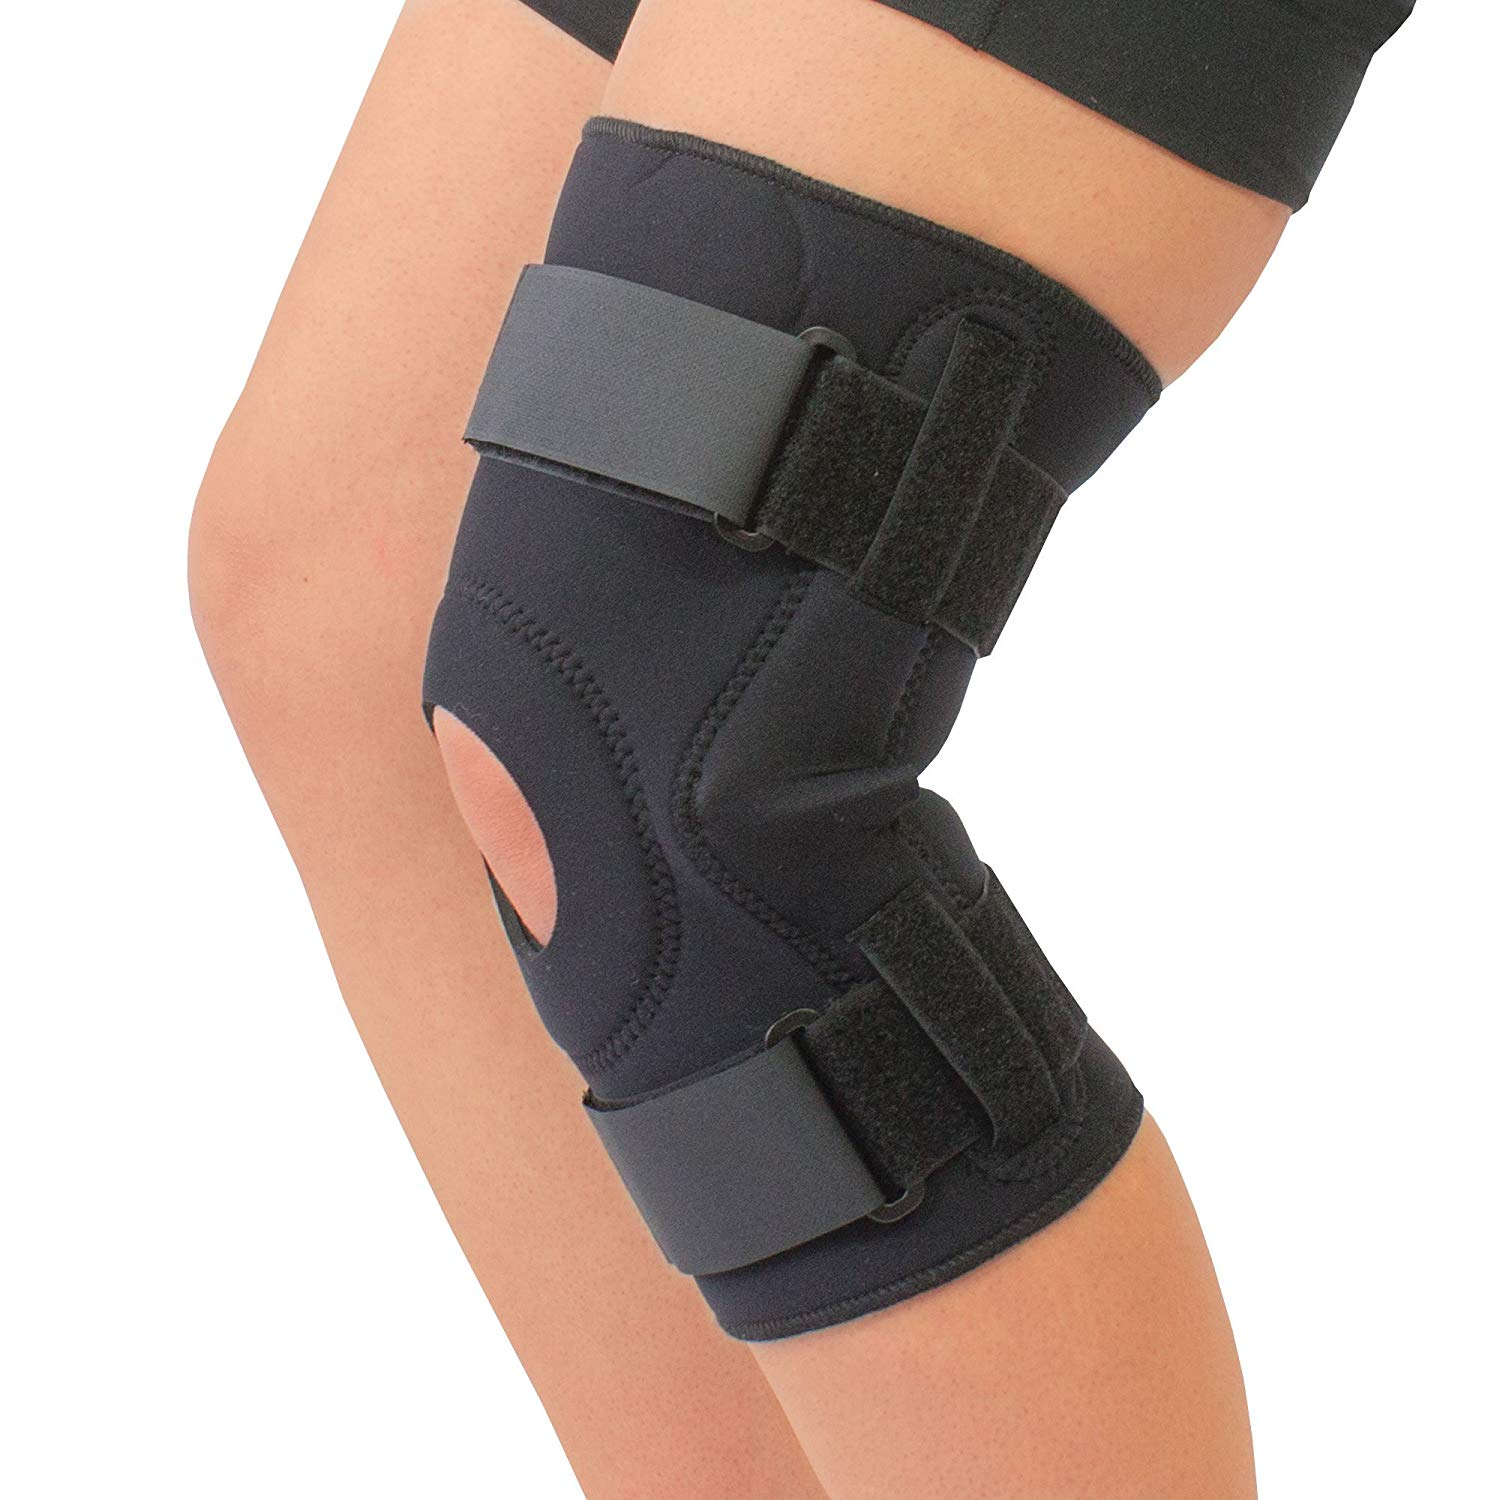 8e769f7b6d Get Quotations · Neoprene Cushioned Hyperextension Hinged Knee Brace Support  Beige and Black (X-Large, Black